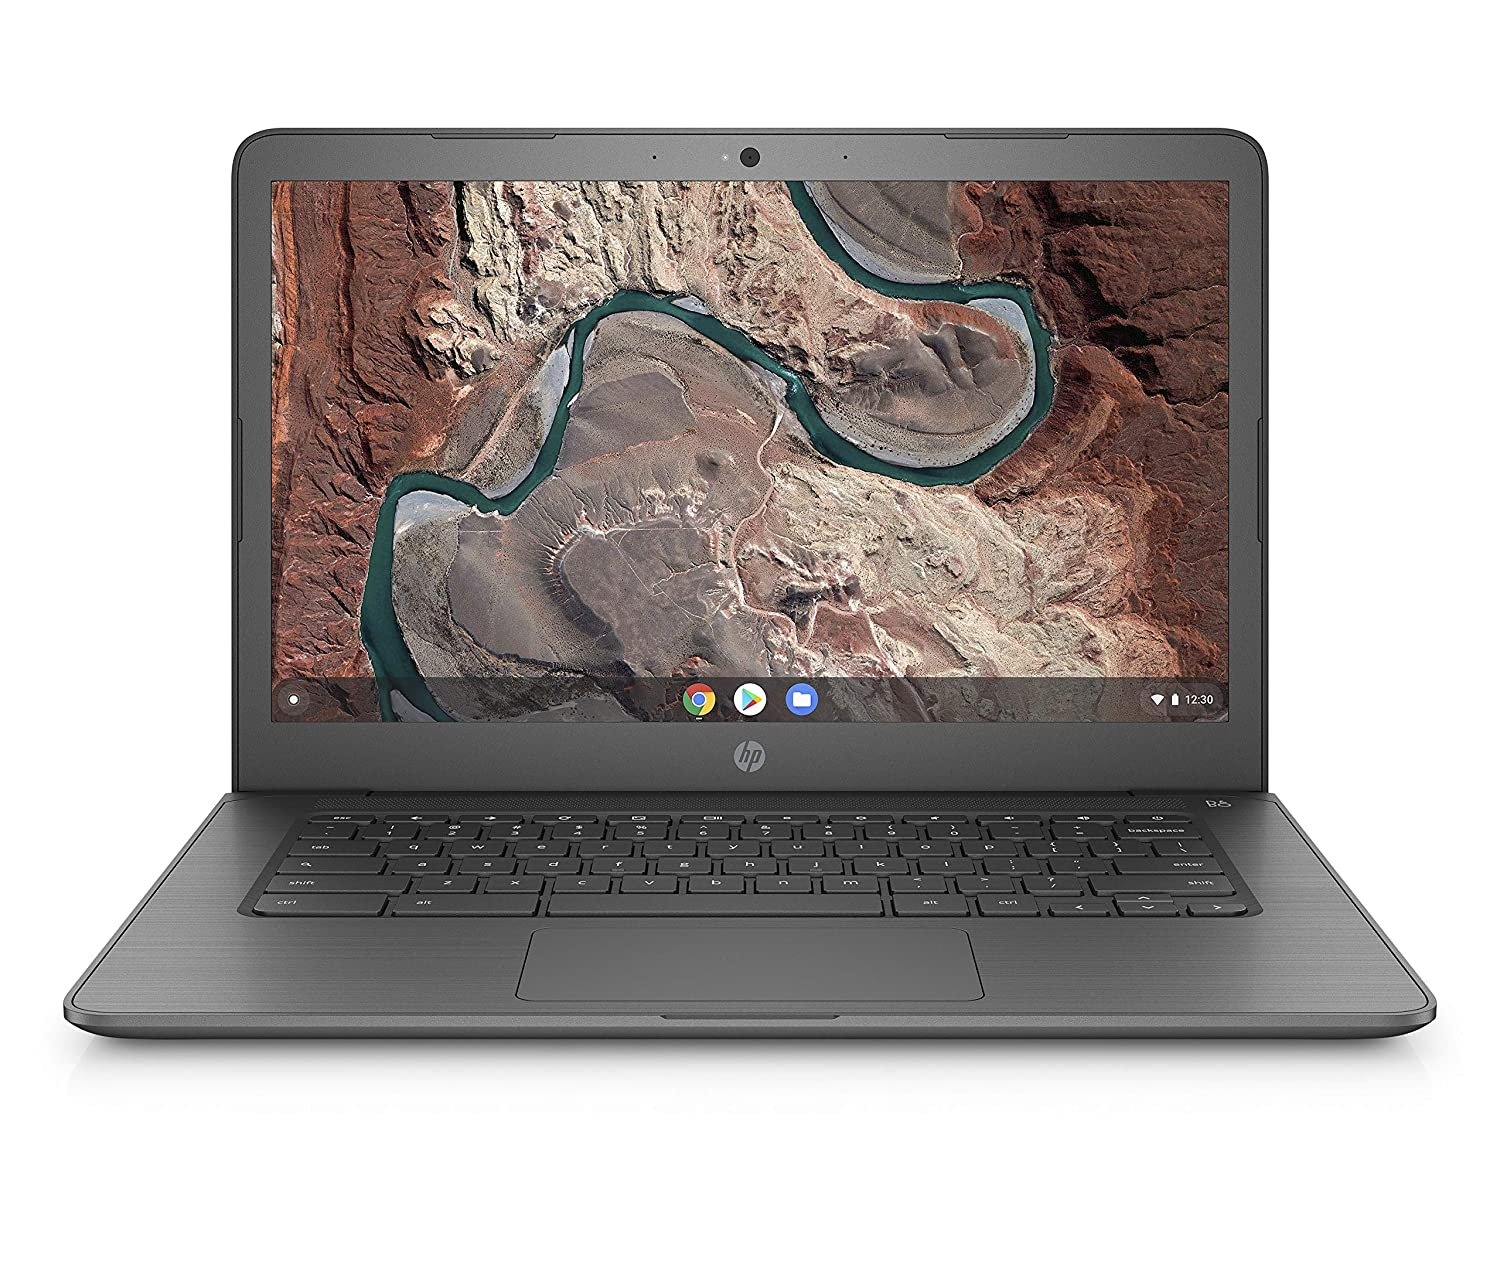 HP Chromebook 14-inch Laptop with 180-degree Hinge, AMD Dual-Core A4-9120 Processor, 4 GB SDRAM, 32 GB eMMC Storage, Chrome OS (14-db0020nr, Chalkboard Gray)